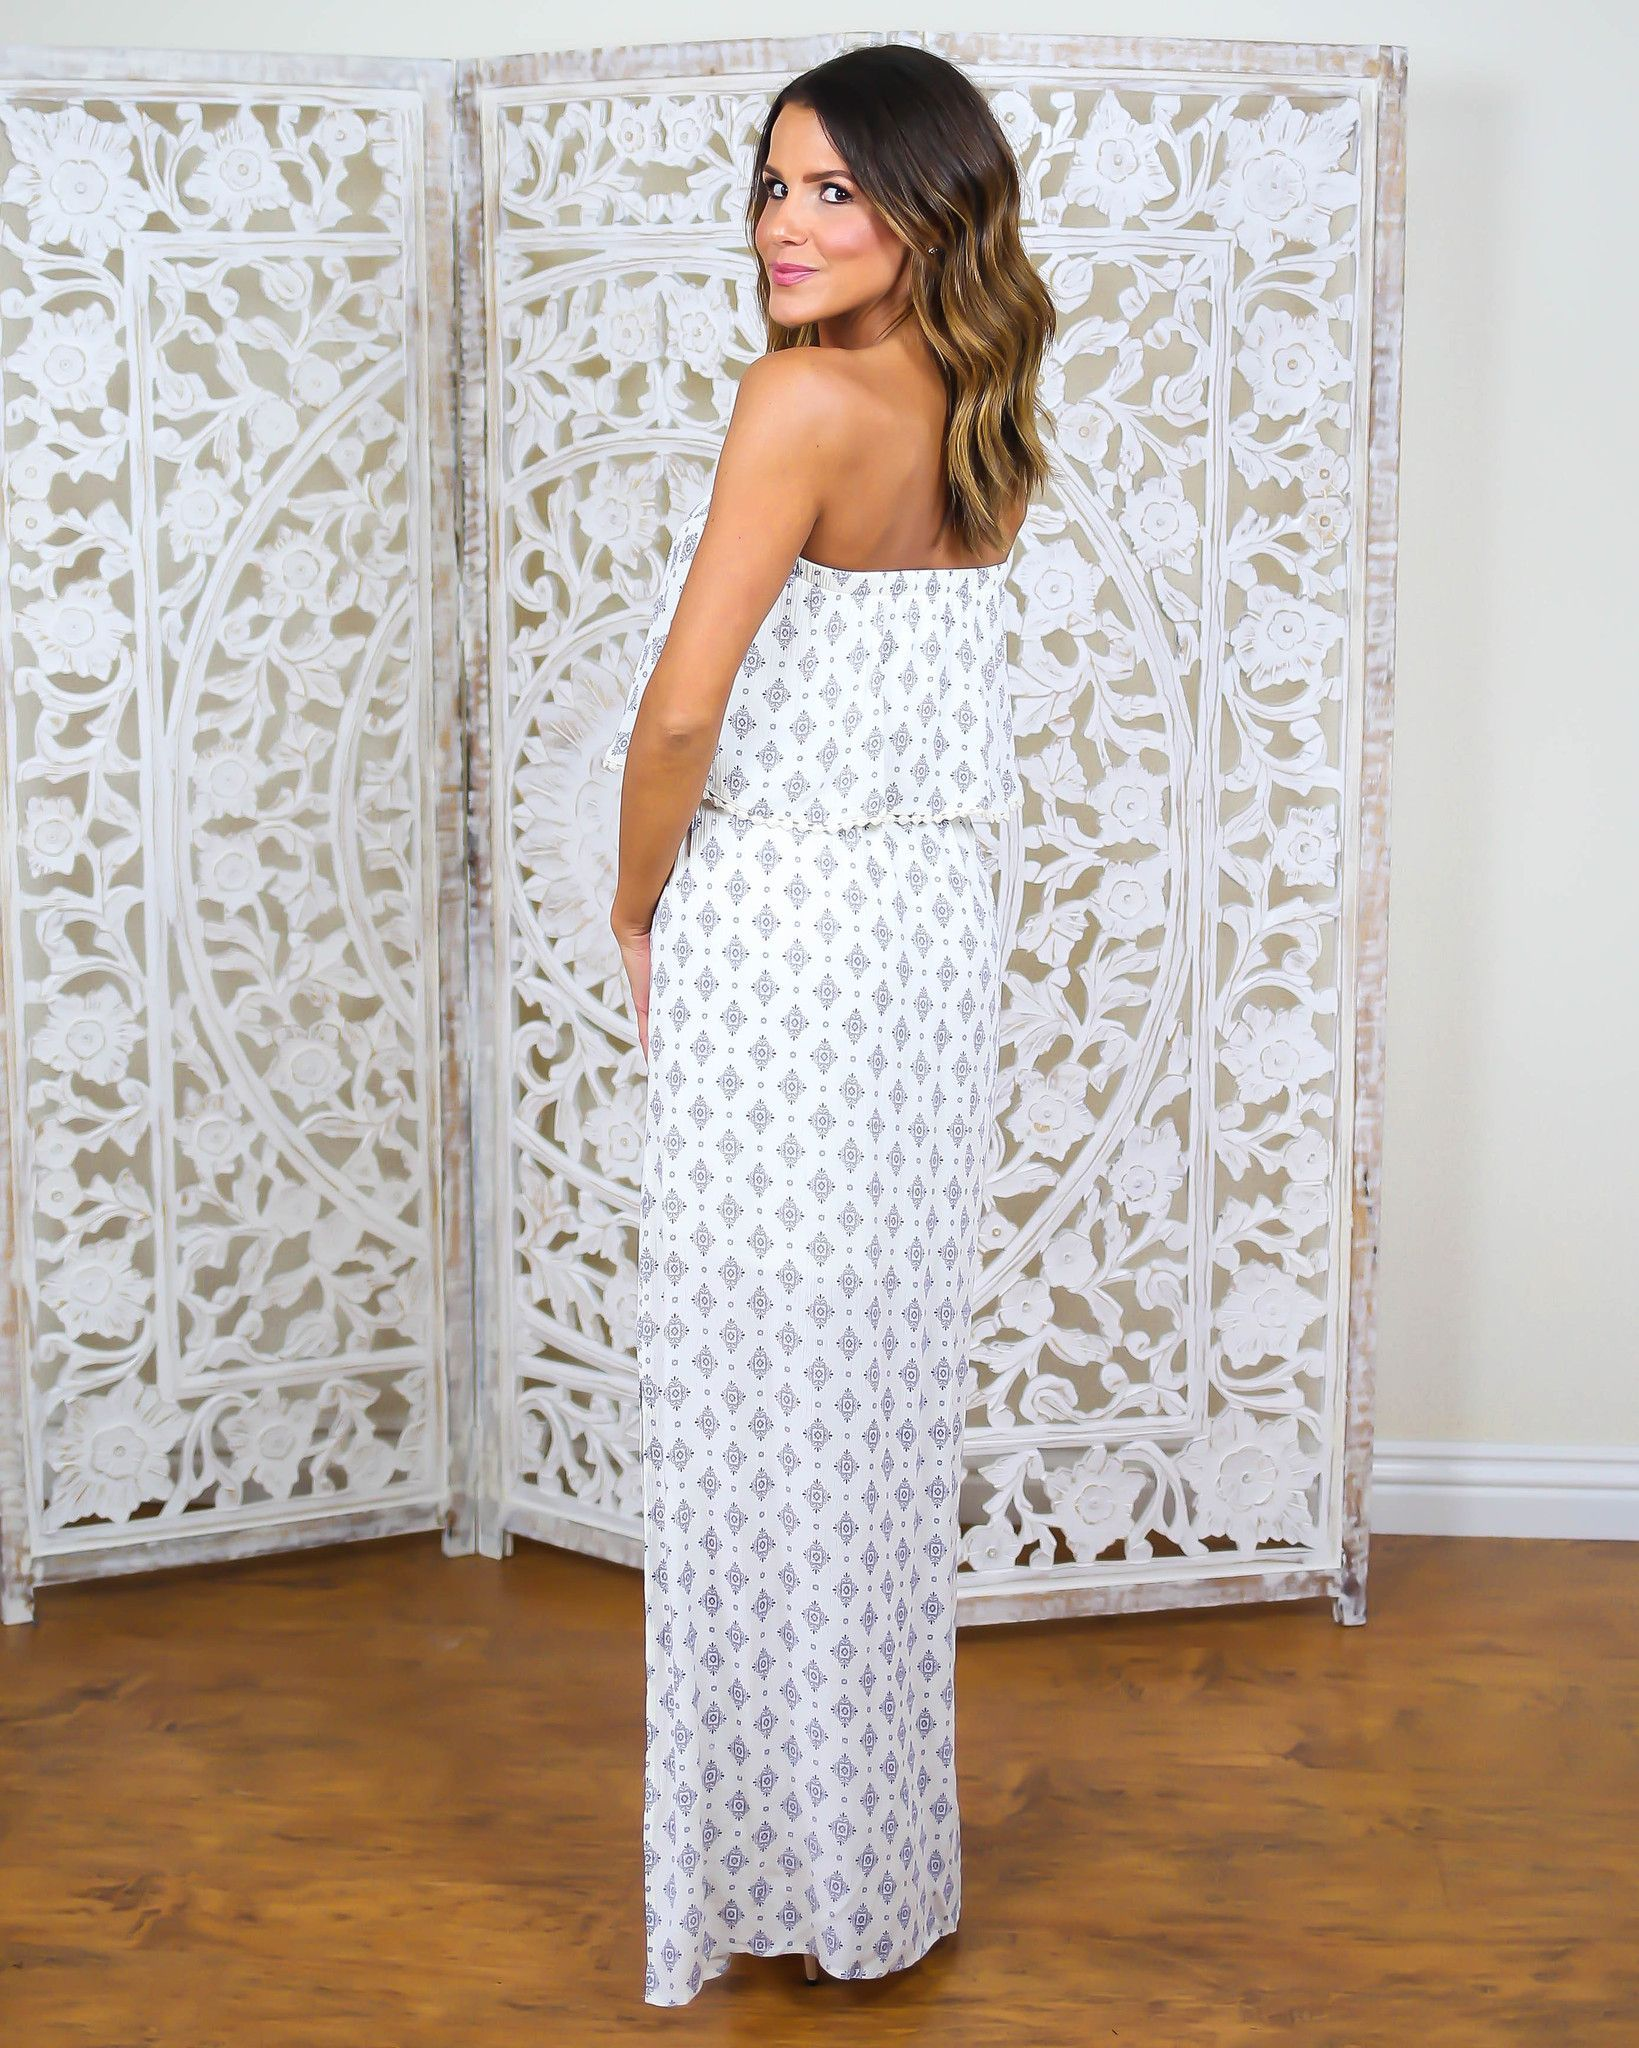 Our gorgeous Sunbent Maxi Dress is a stunning must have for Spring events. We love the stunning and simple silhouette with a cream and navy pattern that is boho and classic at the same time. The tiny medallion style pattern detail beautifully accents this strapless maxi dress, fully lined and finished with a subtle side slit. Tassel detailing on the shelf of this dress gives a weekend ready vibe.